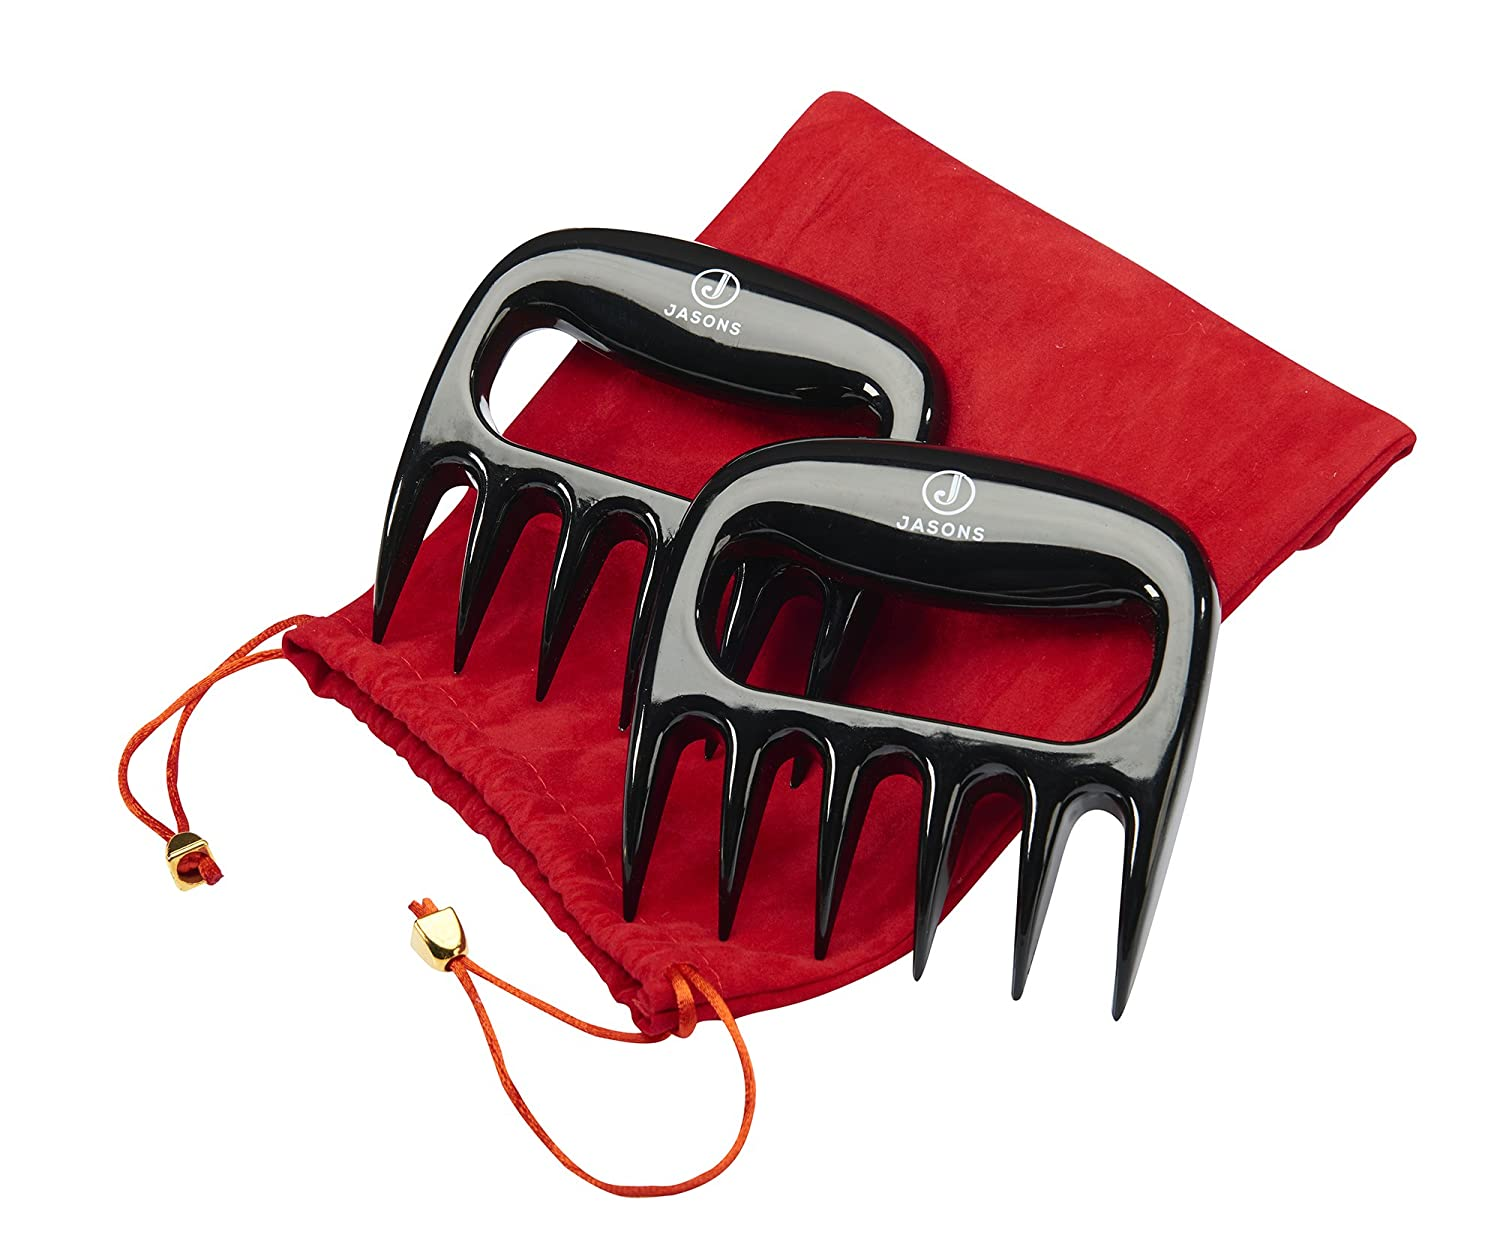 Jasons Premium Meat Shredding Claws BBQ Grilling Handling Lifting Carving Pork Forks Food Shredder Grips Heat Resistant Paws for Pulling Meats- Storage Pouch Bonus